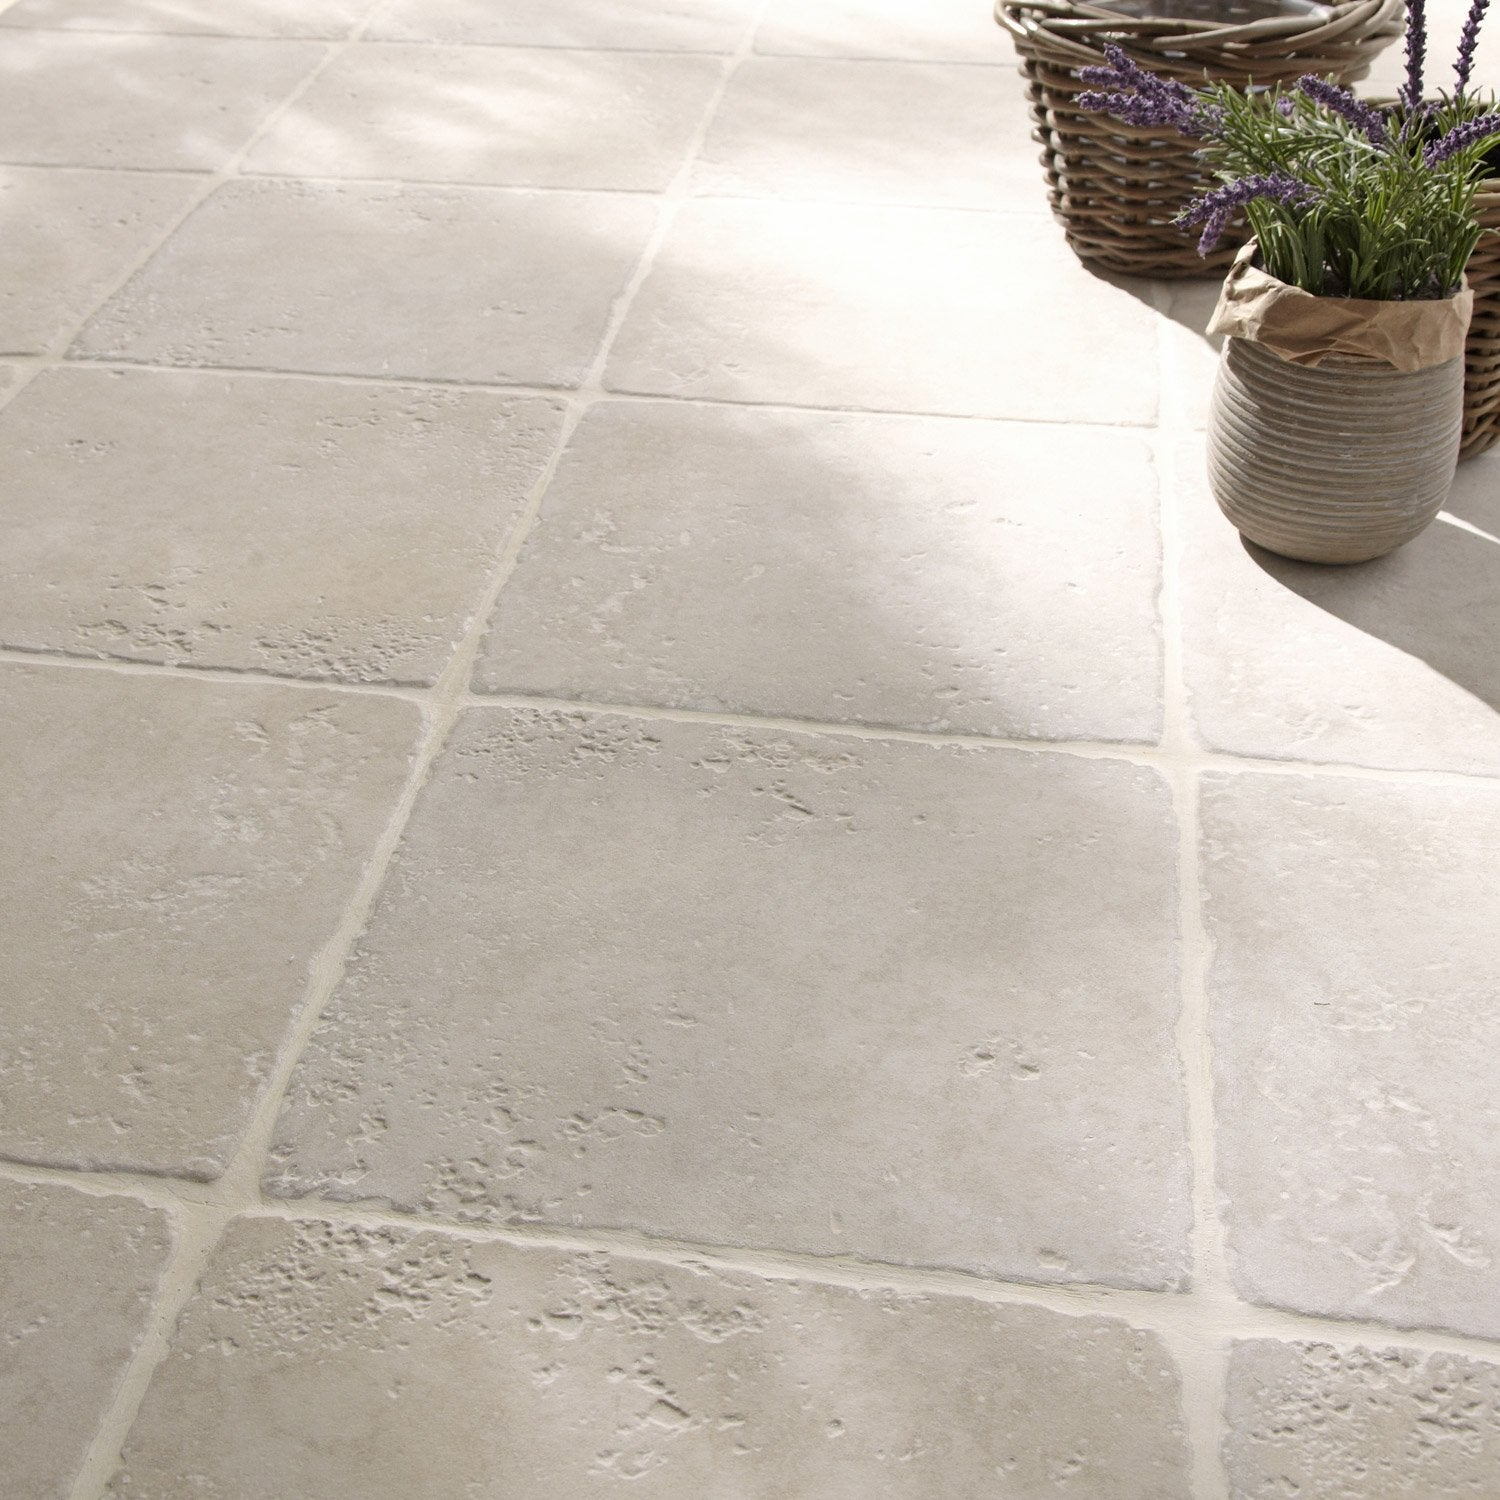 Carrelage blanc effet pierre toscane x cm for Carrelage le roy merlin